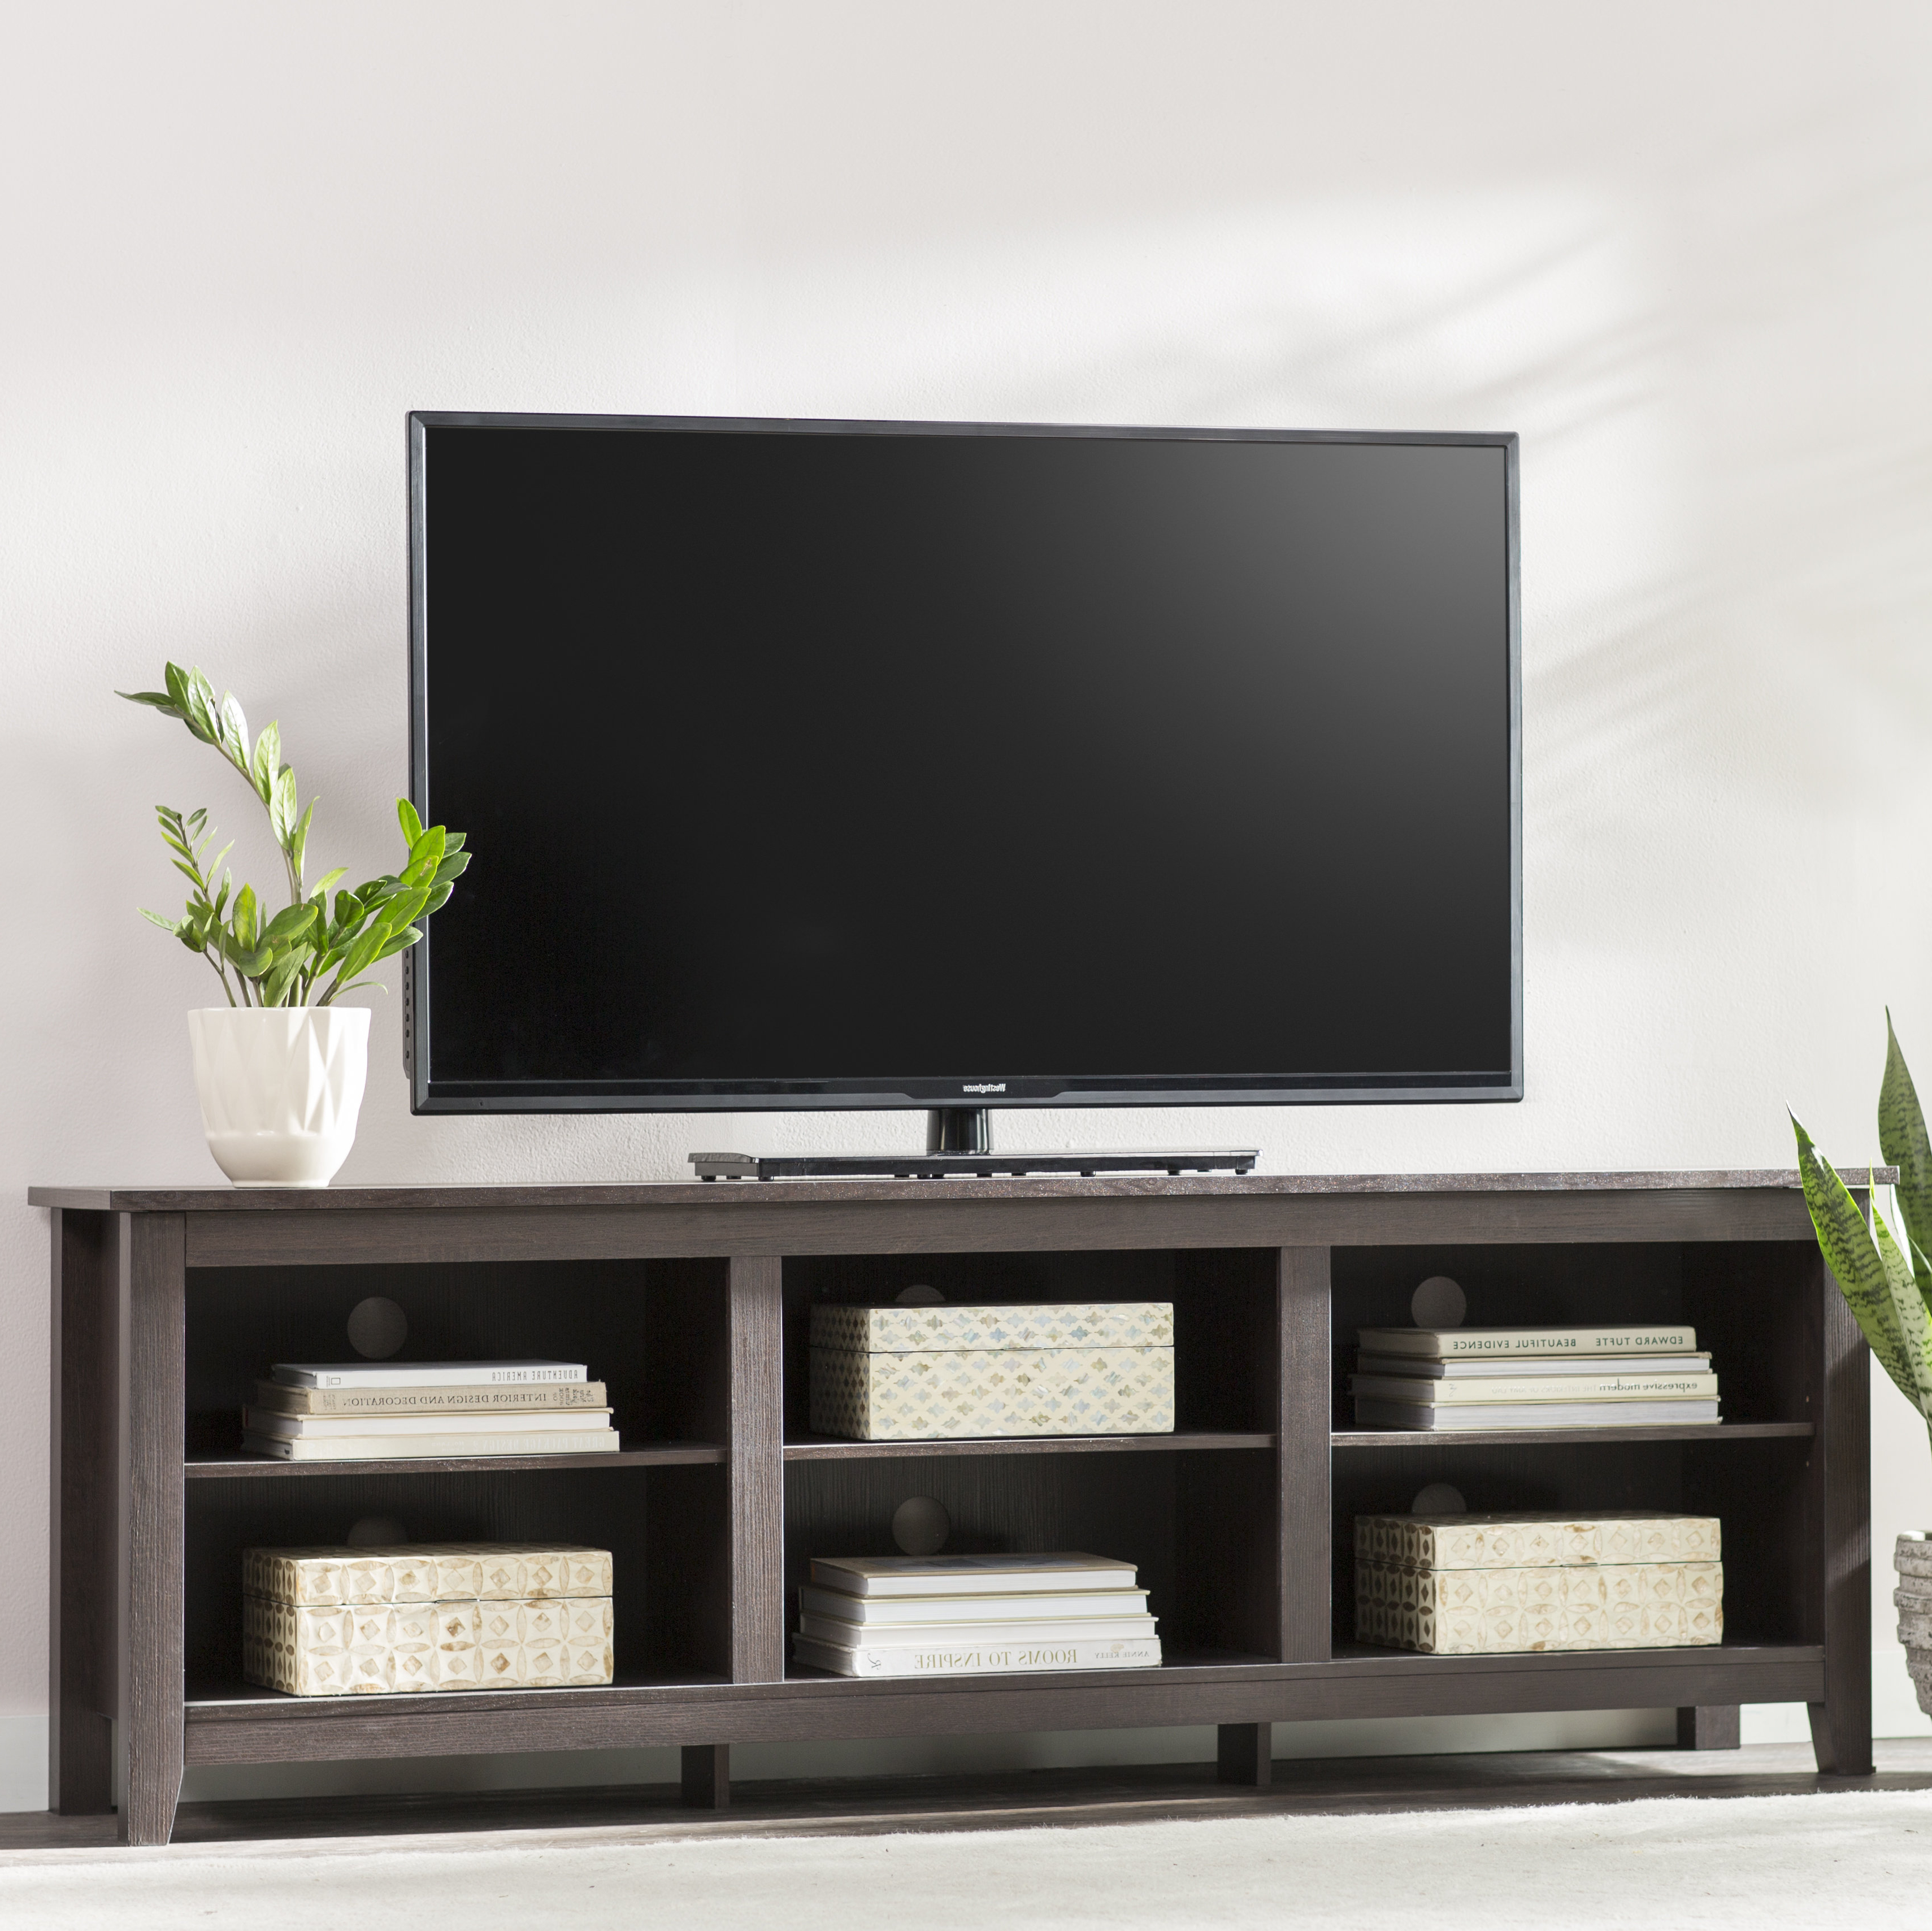 Wayfair With Regard To Most Up To Date Tv Stands For 43 Inch Tv (View 10 of 20)